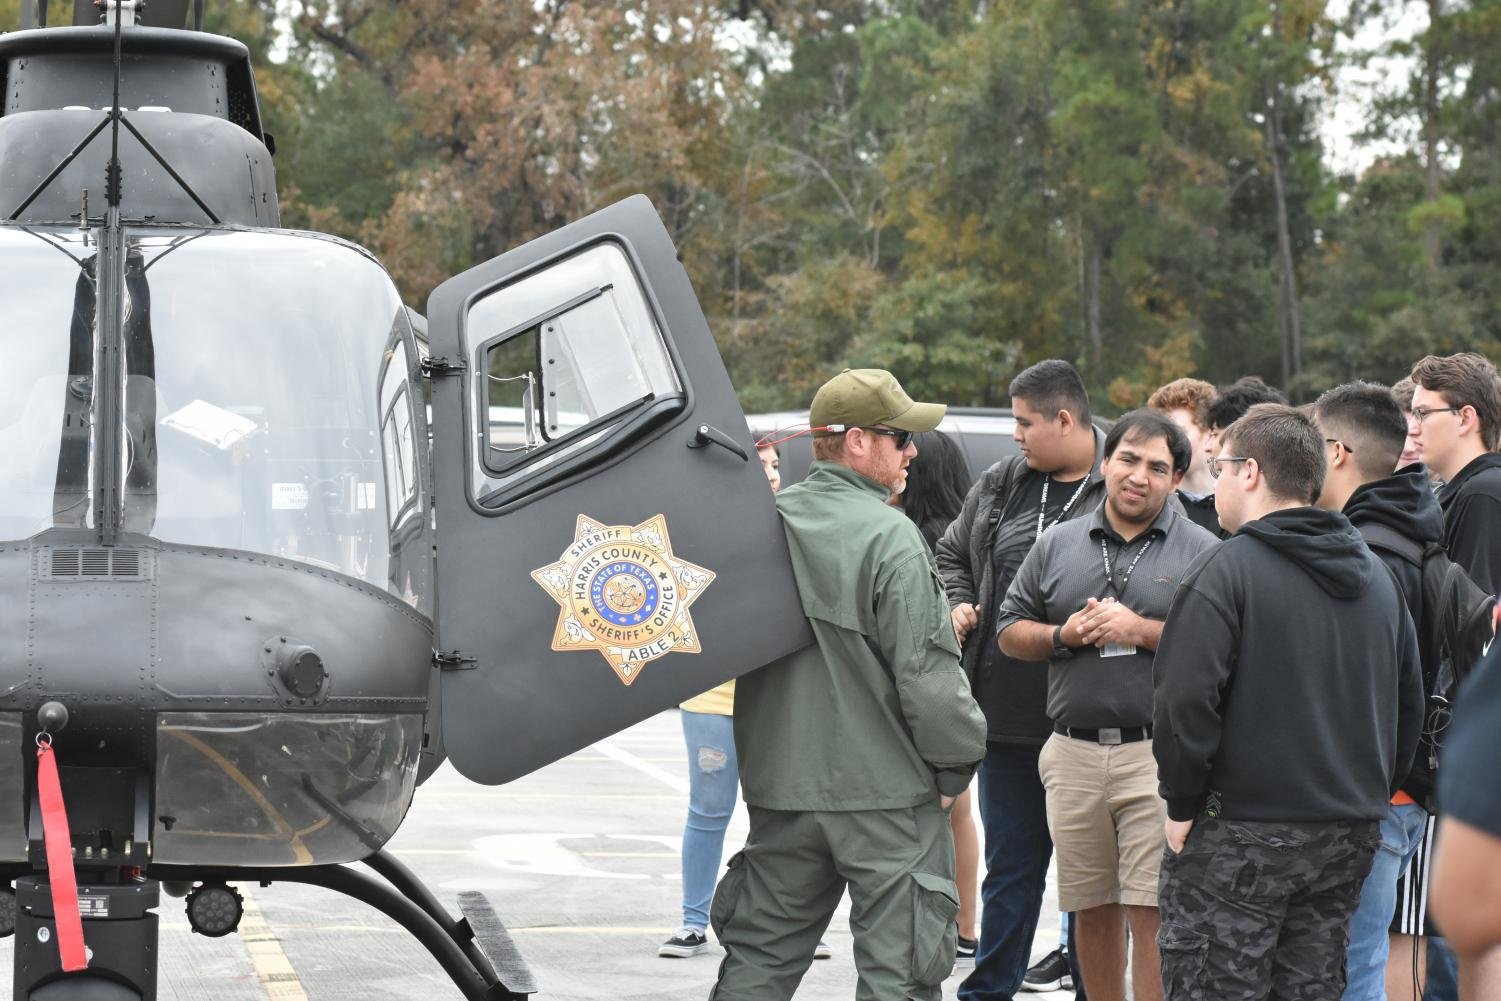 Students in teacher Scarlett May's Criminal Justice class meet professionals after a police helicopter arrived on campus for a special event for the class.